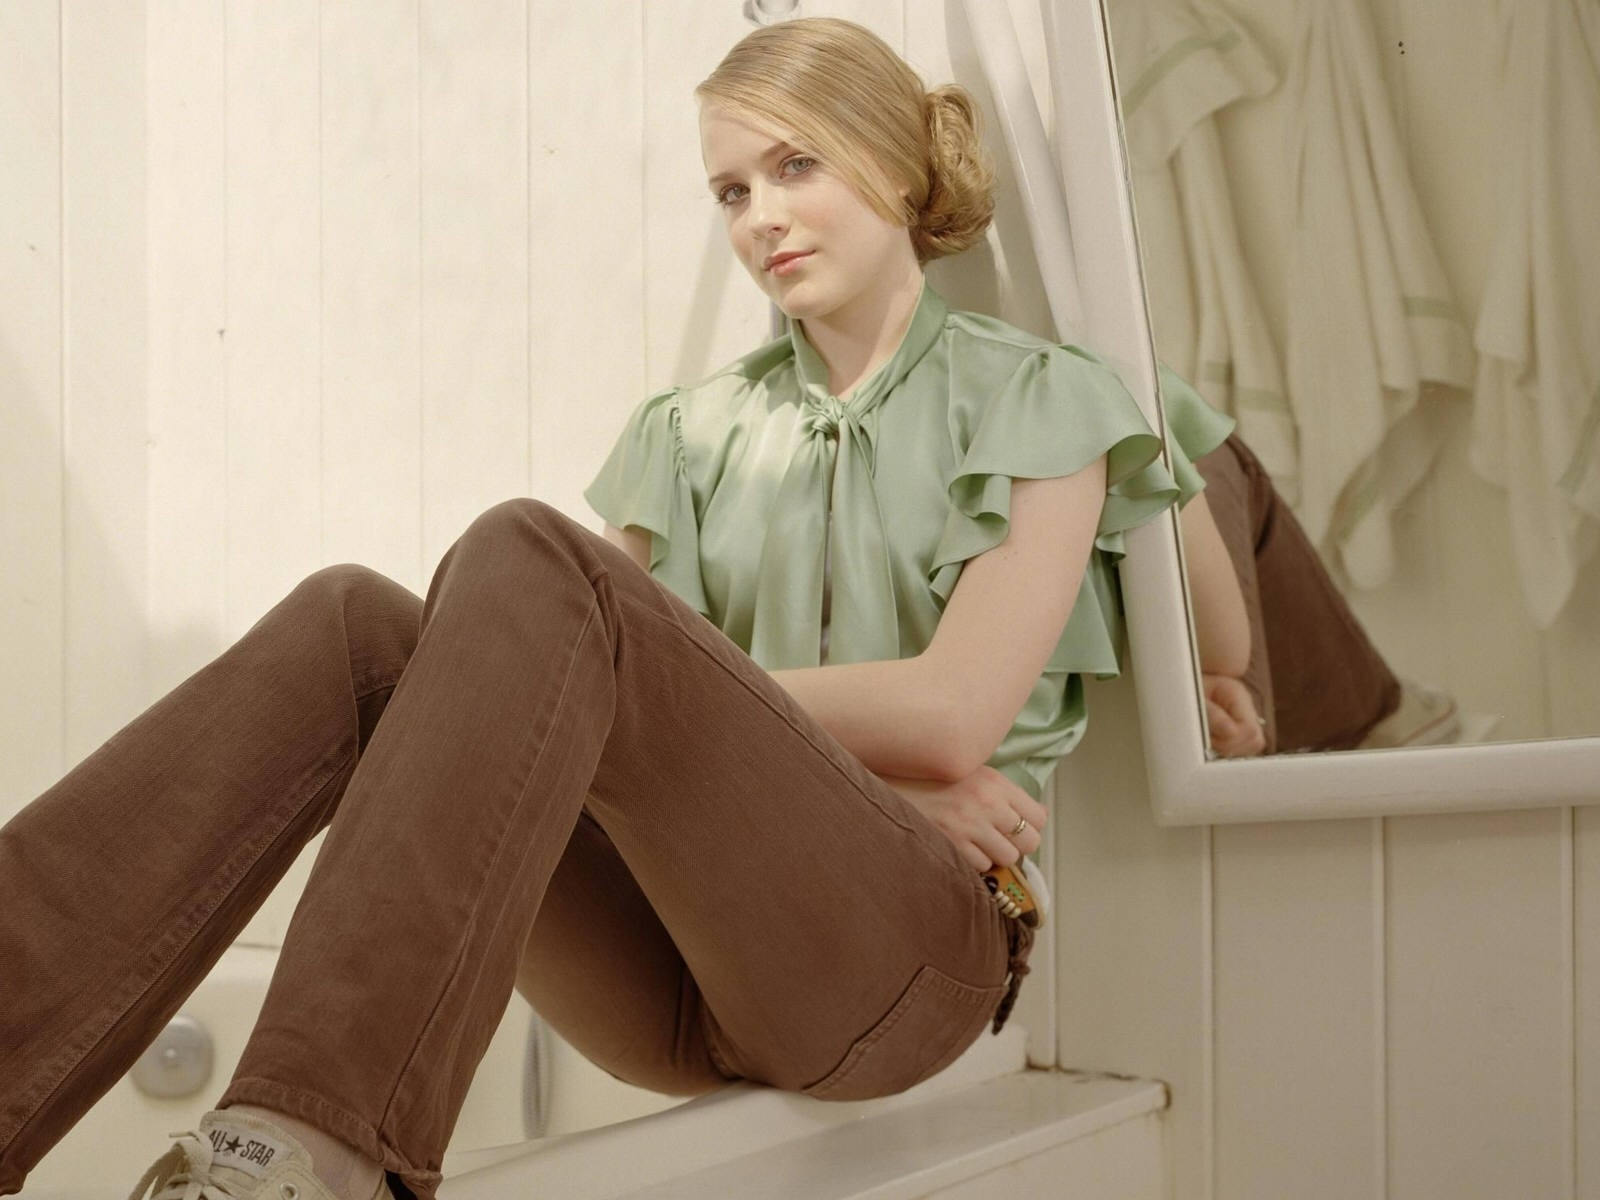 Wallpaper di Evan Rachel Wood, attrice